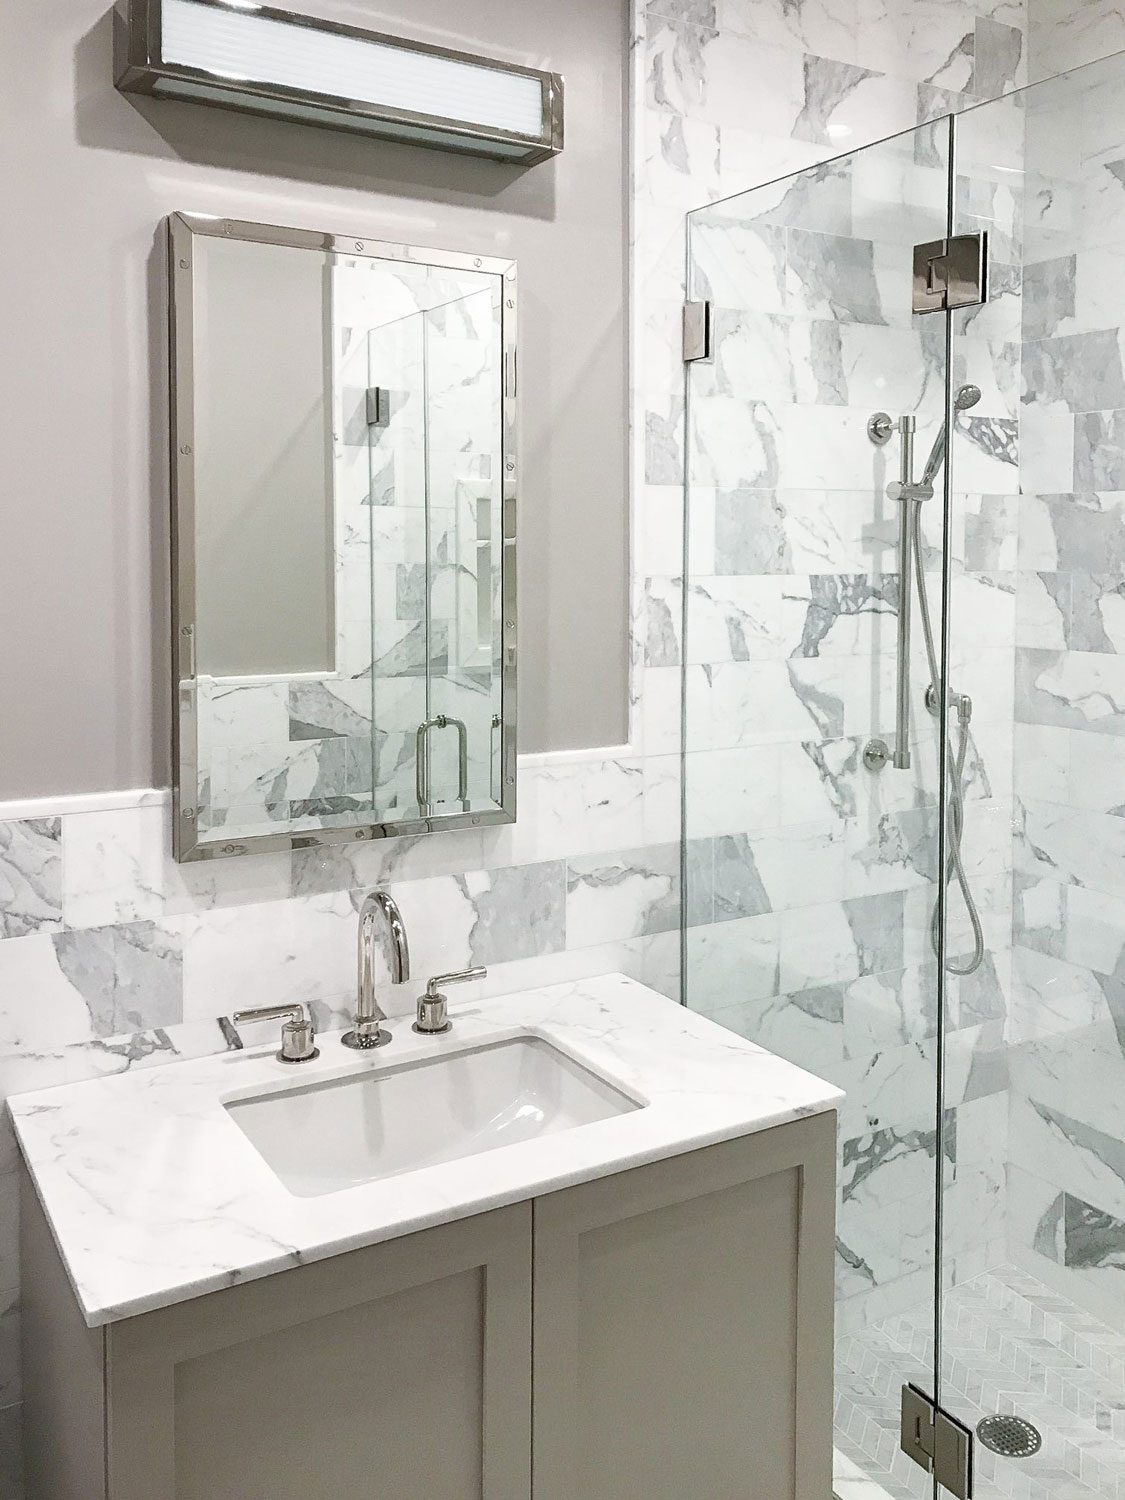 Bathroom with Tile Floors - T.F. Andrew - Carpet One